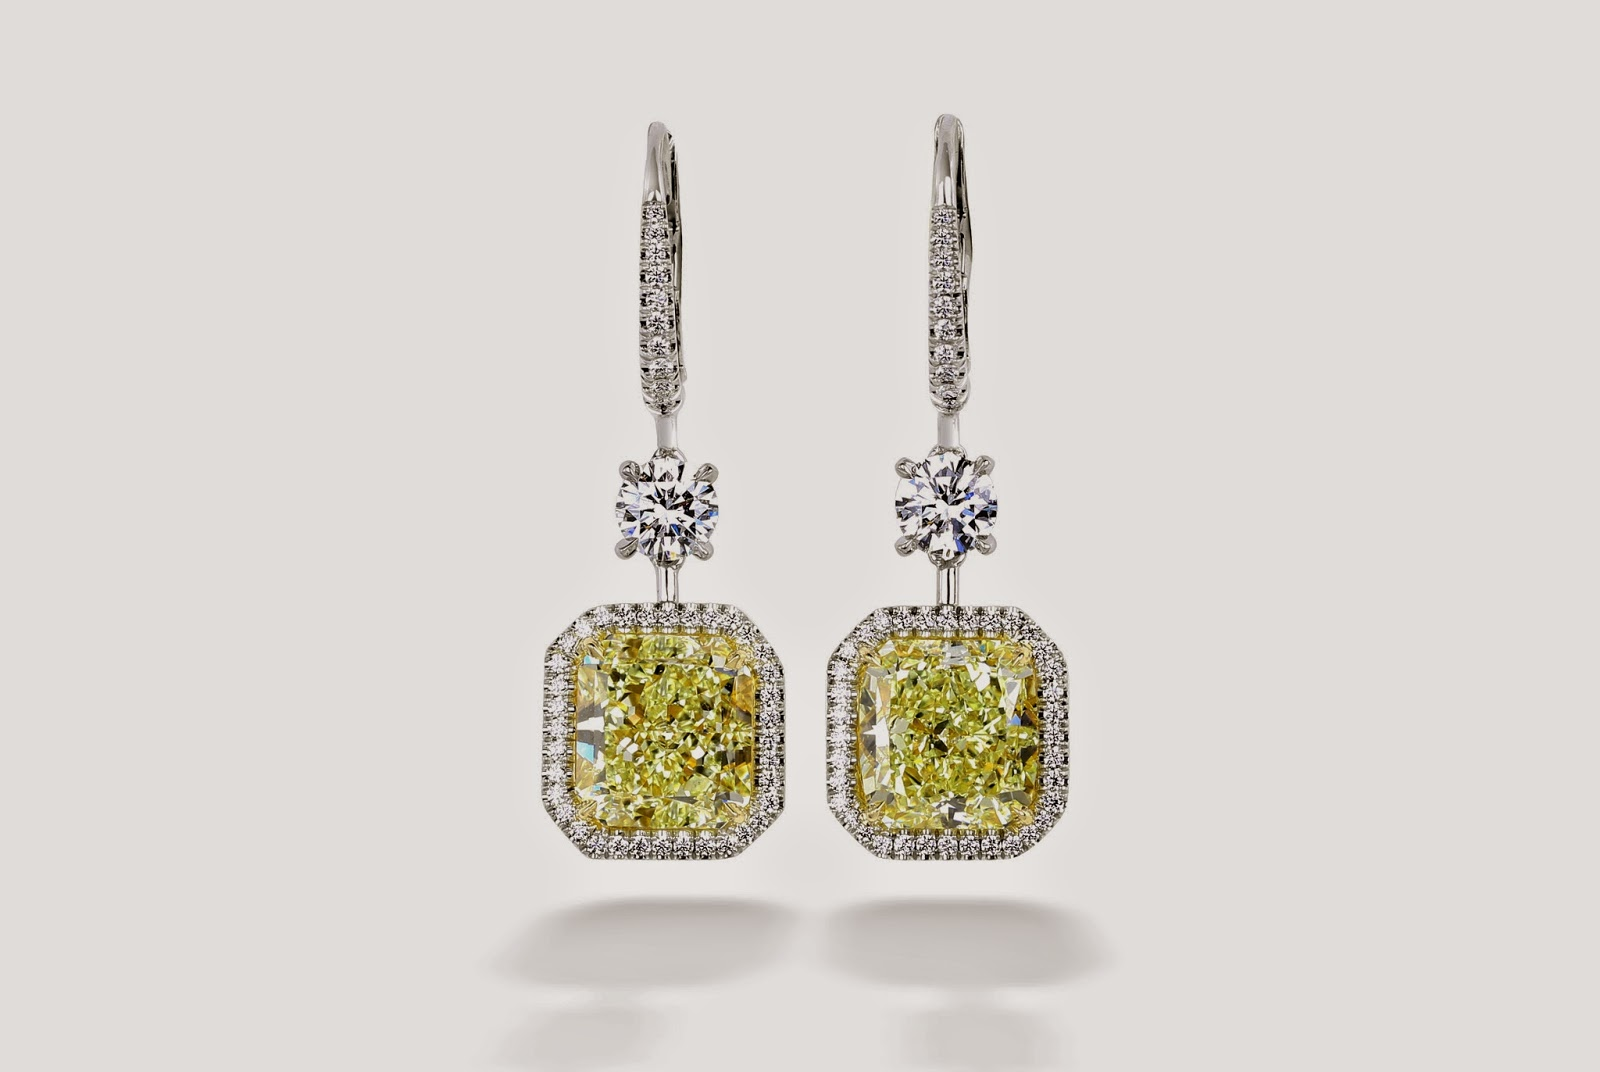 Center Of My Universe Fancy Yellow Diamond Earrings By Premier Gem Set In 18k White Gold 10 05 Ctw